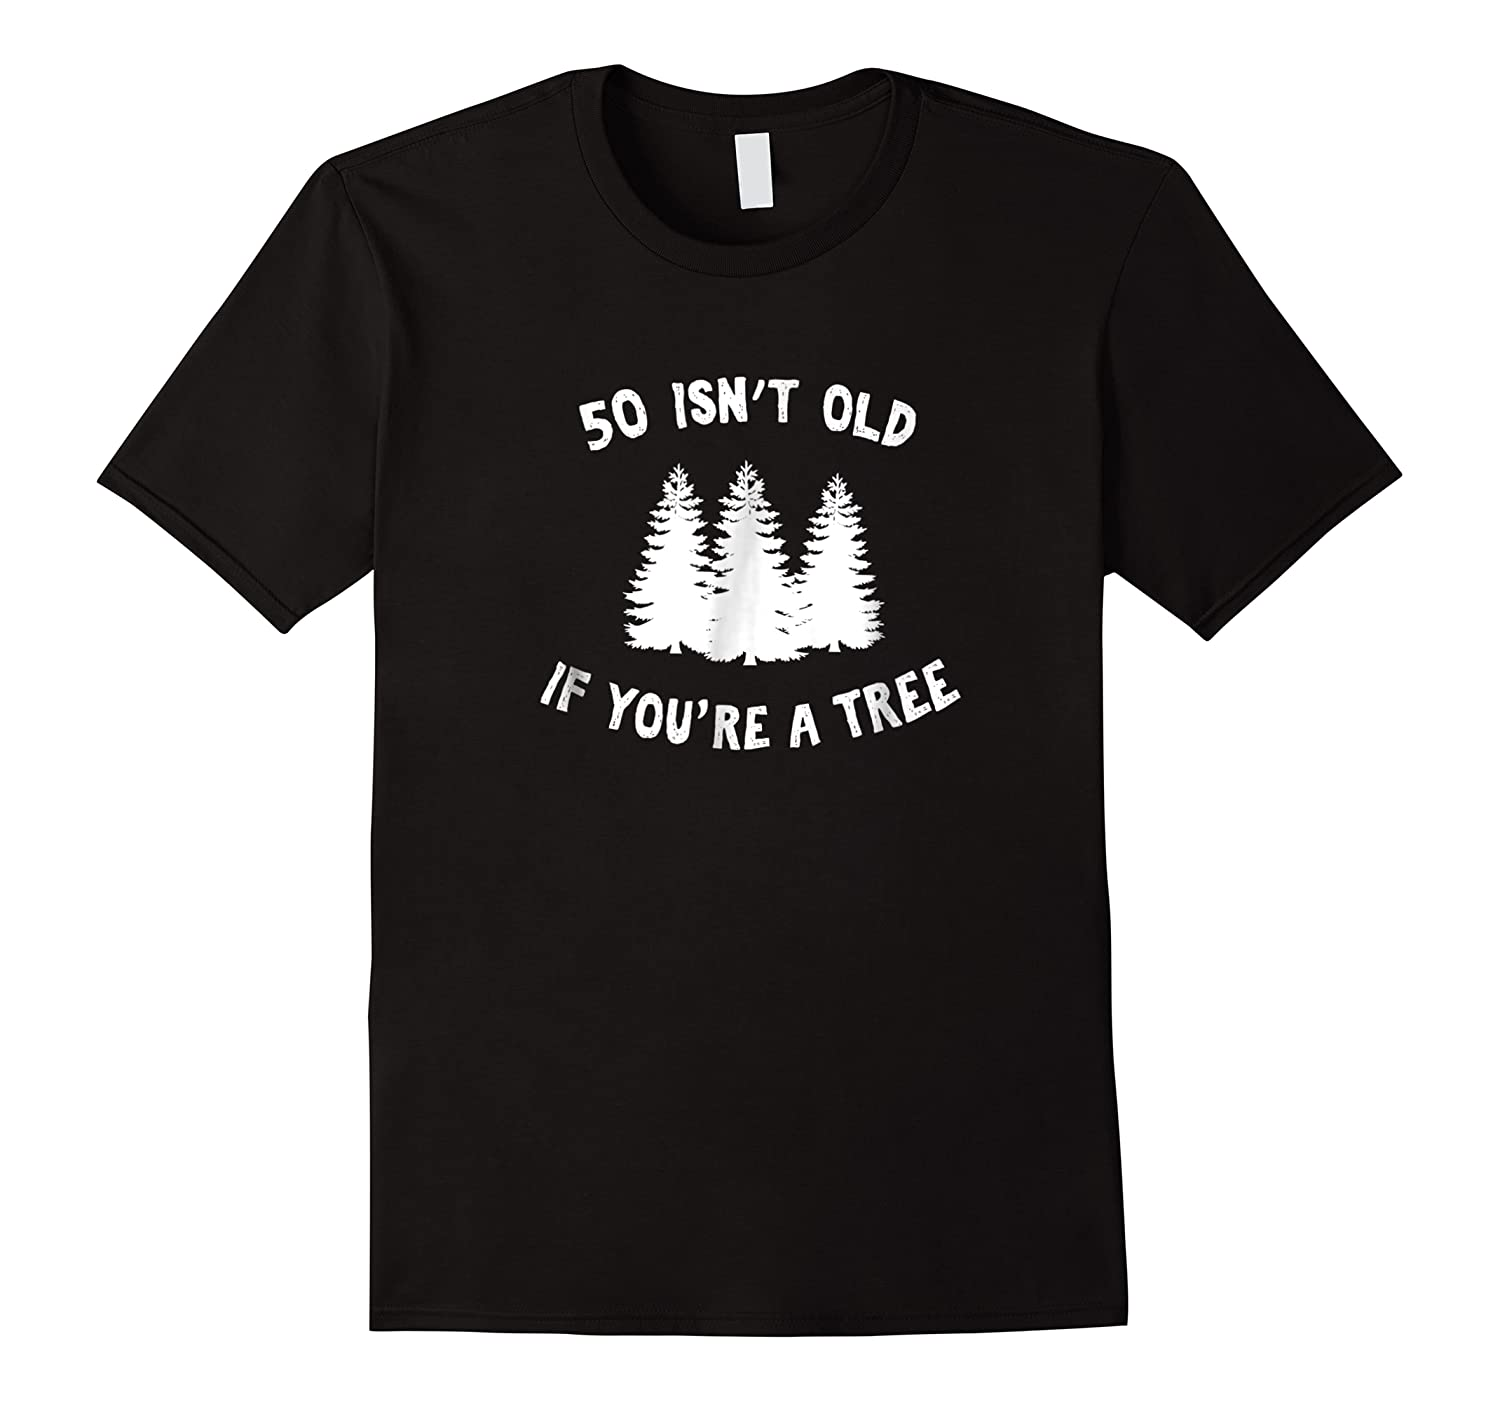 50 Isn't Old If You're A Tree Sarcastic Group Party Shirts